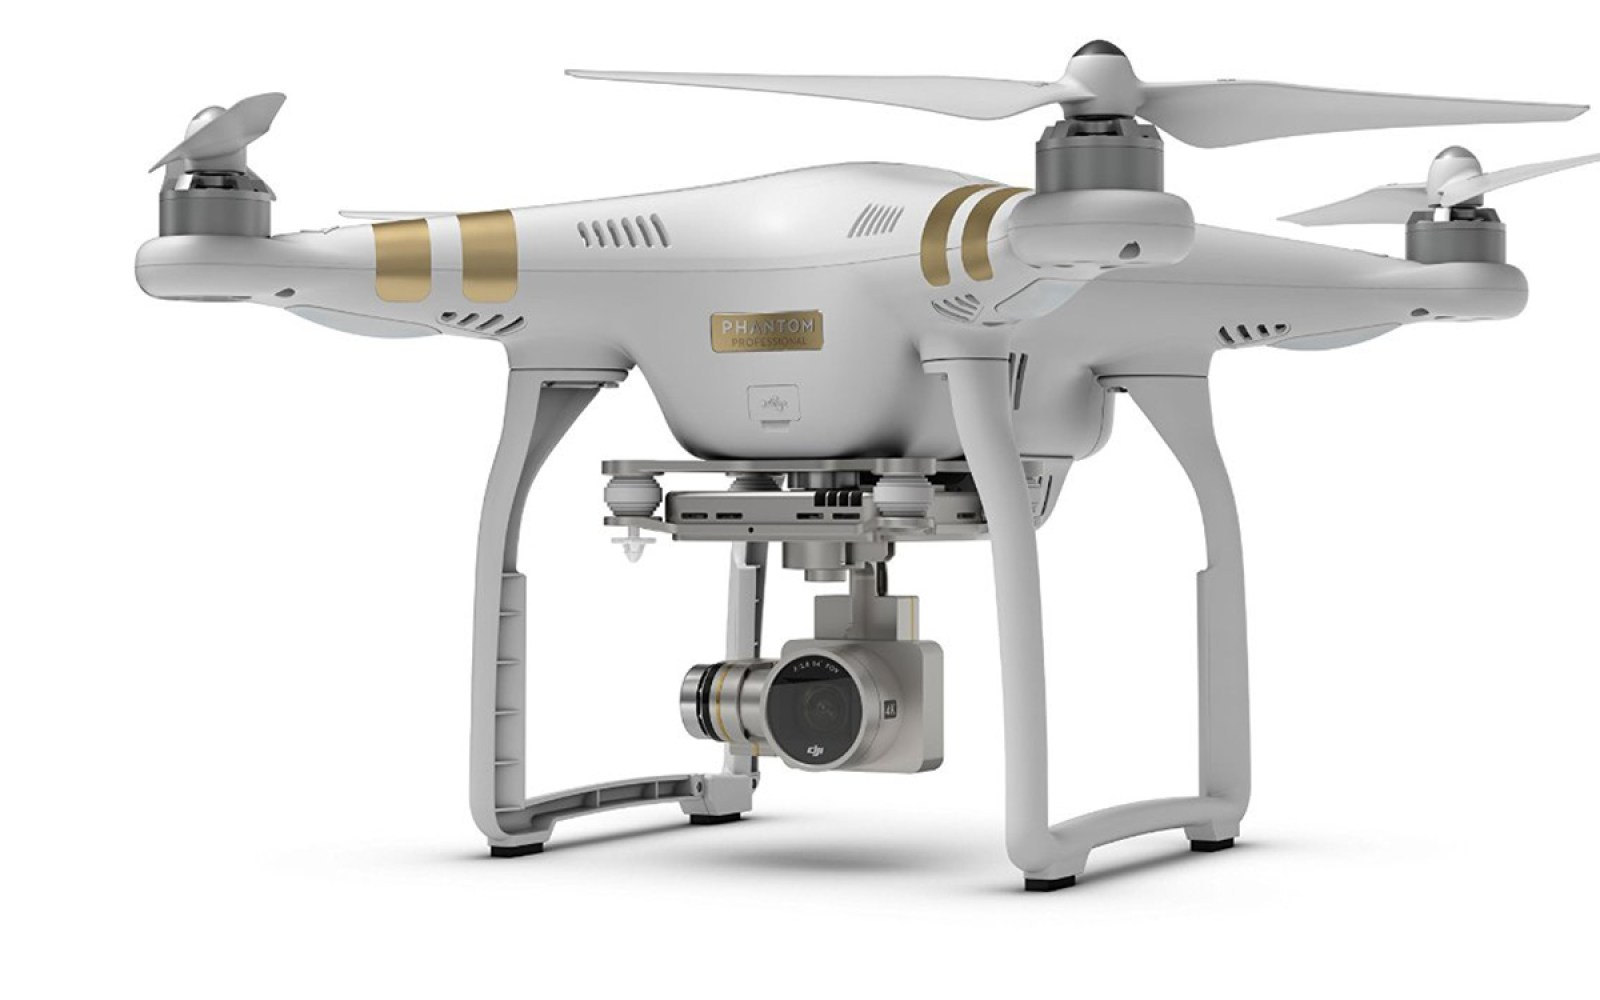 The DJI Phantom 3 Professional w/ 4K UHD Video Camera (Refurb) is available for $569 shipped (Orig. $1,259)